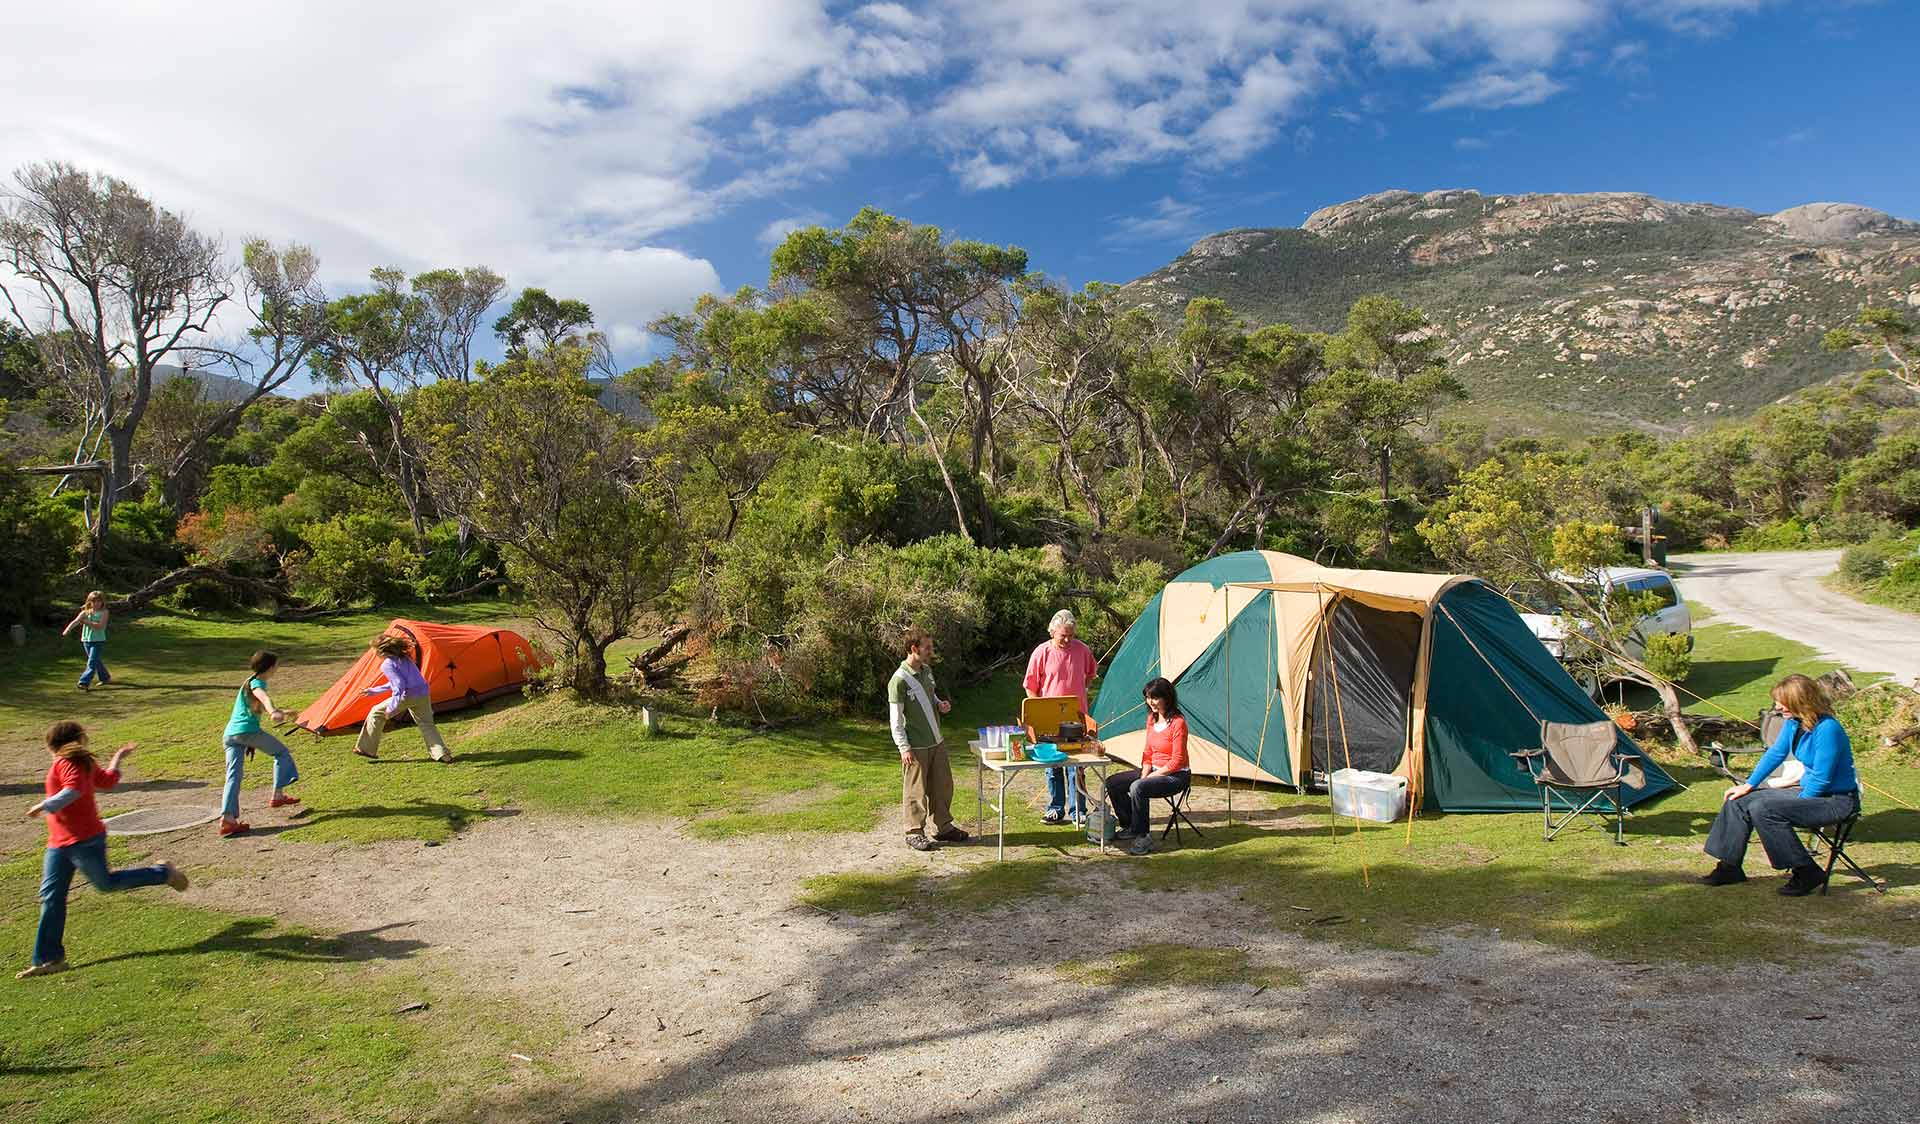 A family set up a campsite at Tidal River Camp Ground at Wilsons Promontory National Park.